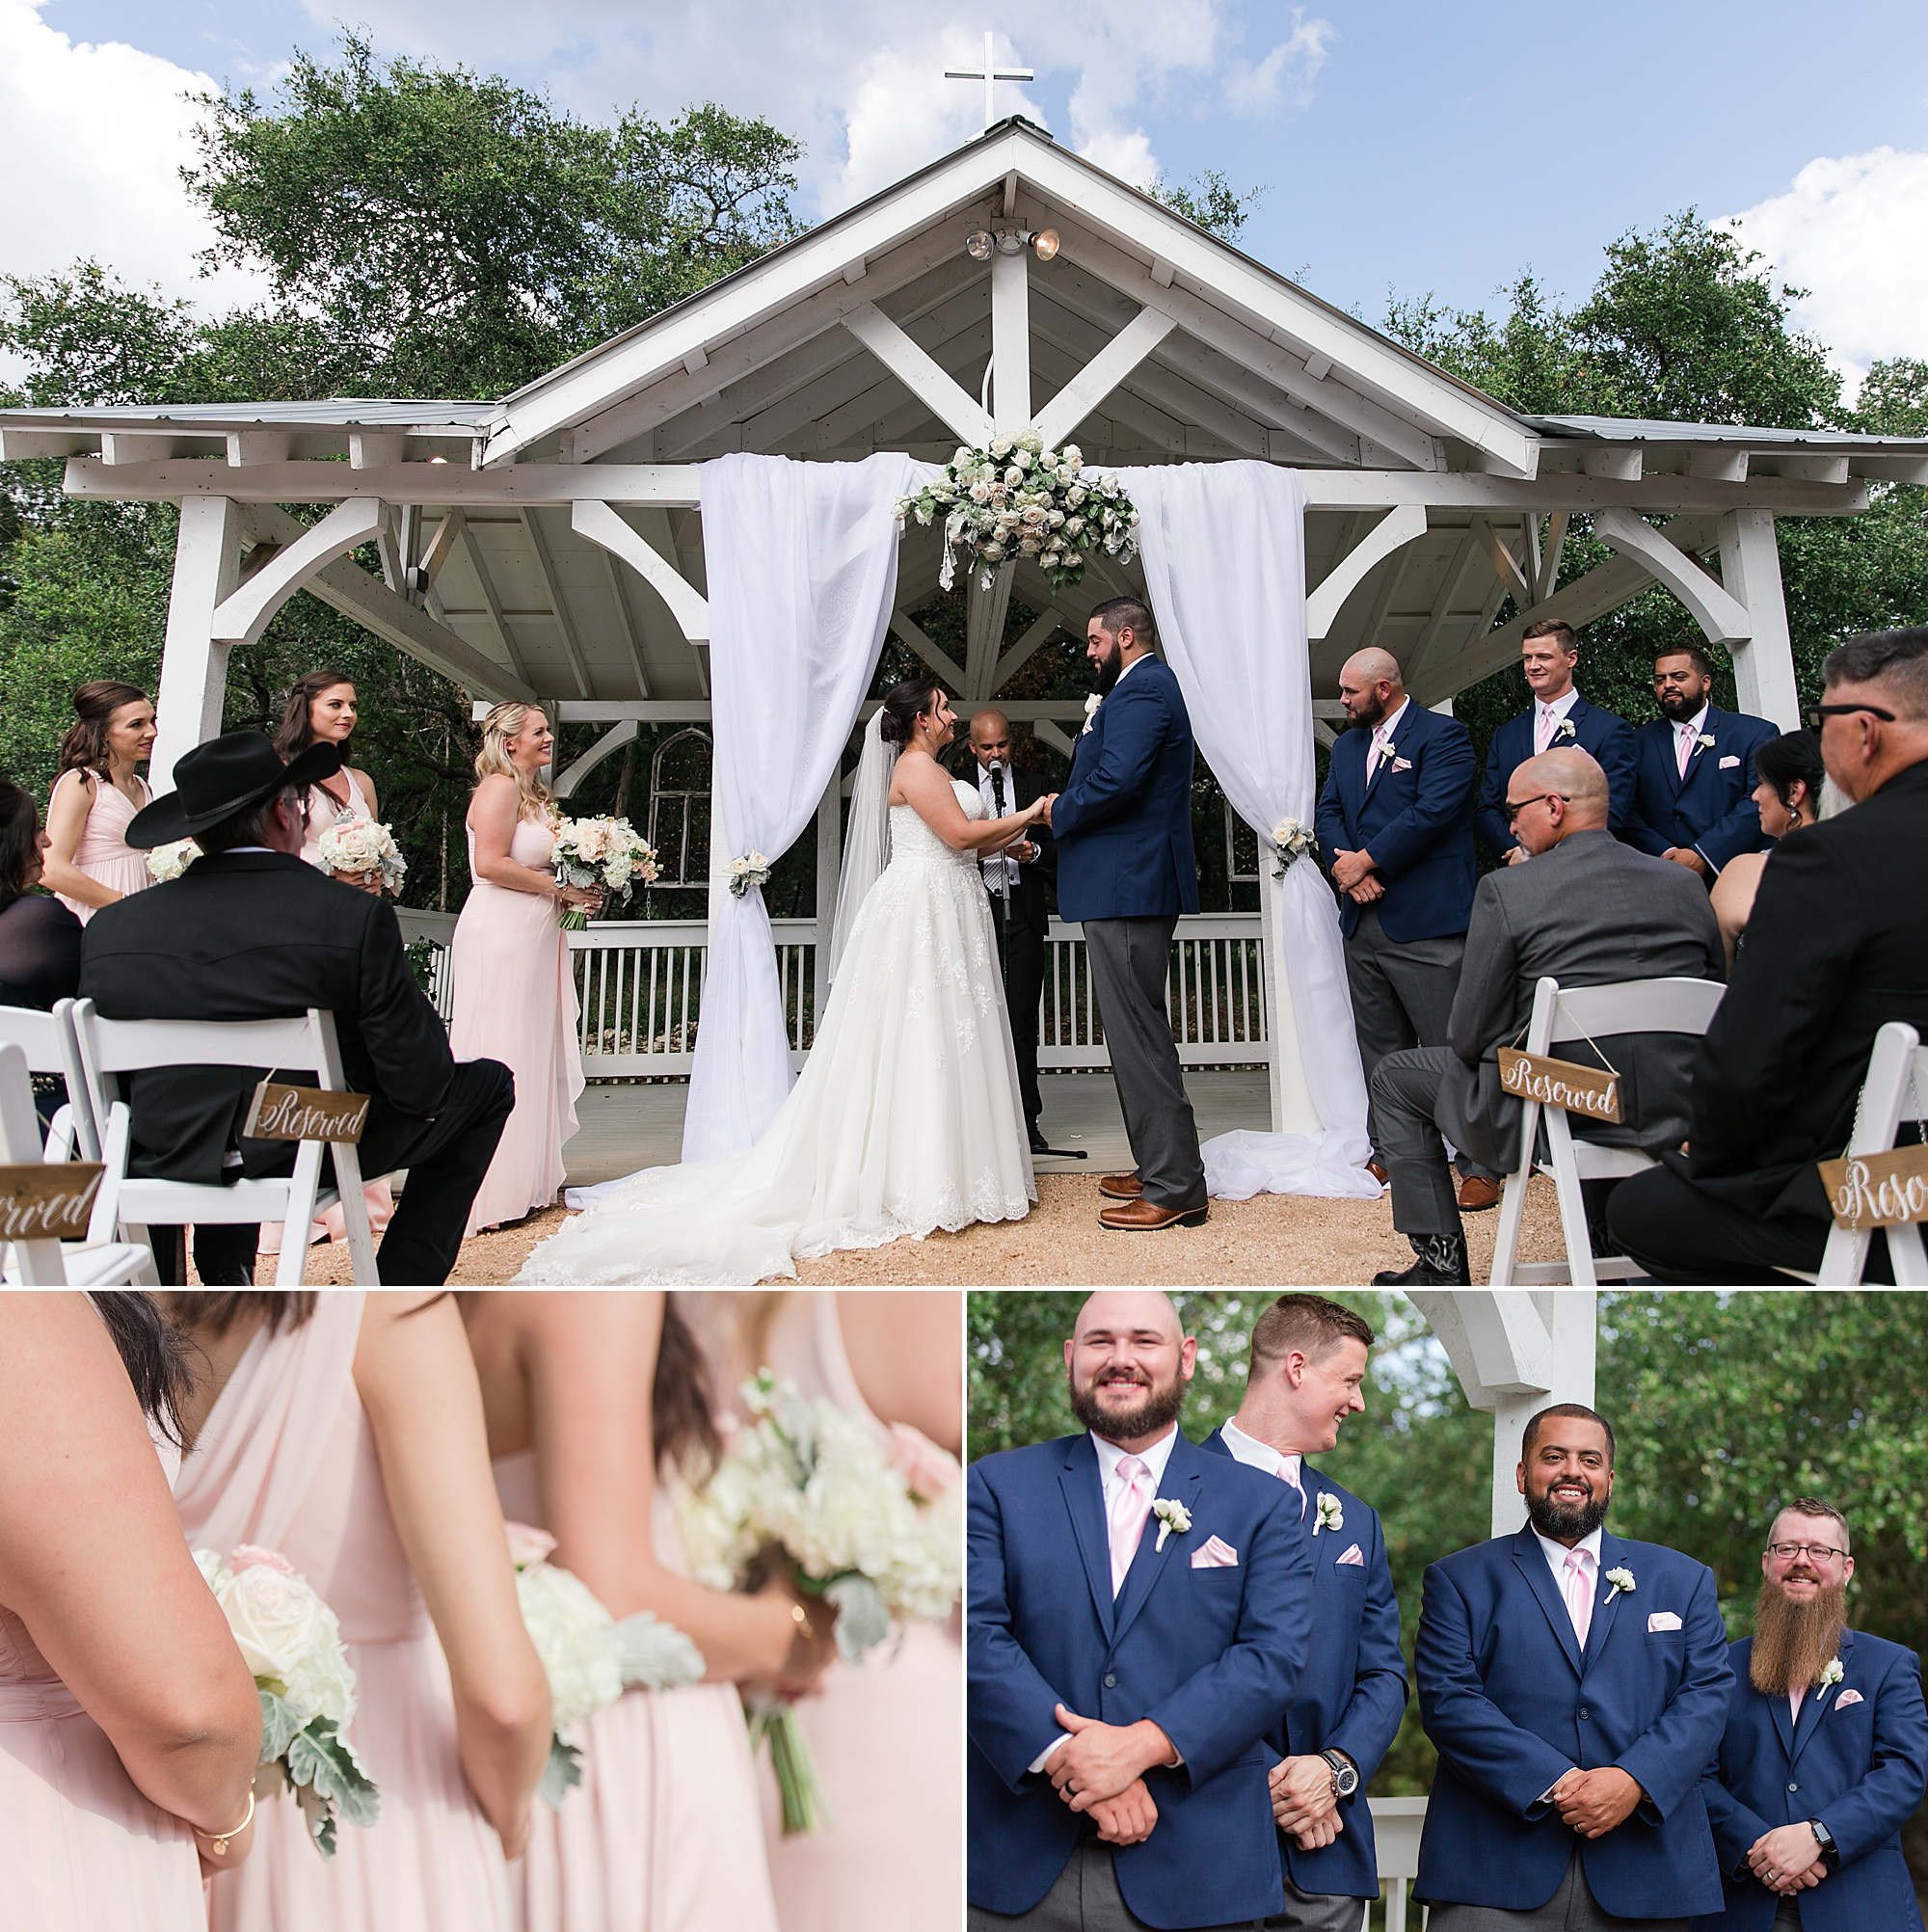 Wedding-Photographer-Bulverde-Texas-Western-Sky-Event-Venue-Carly-Barton-Photography_0042.jpg